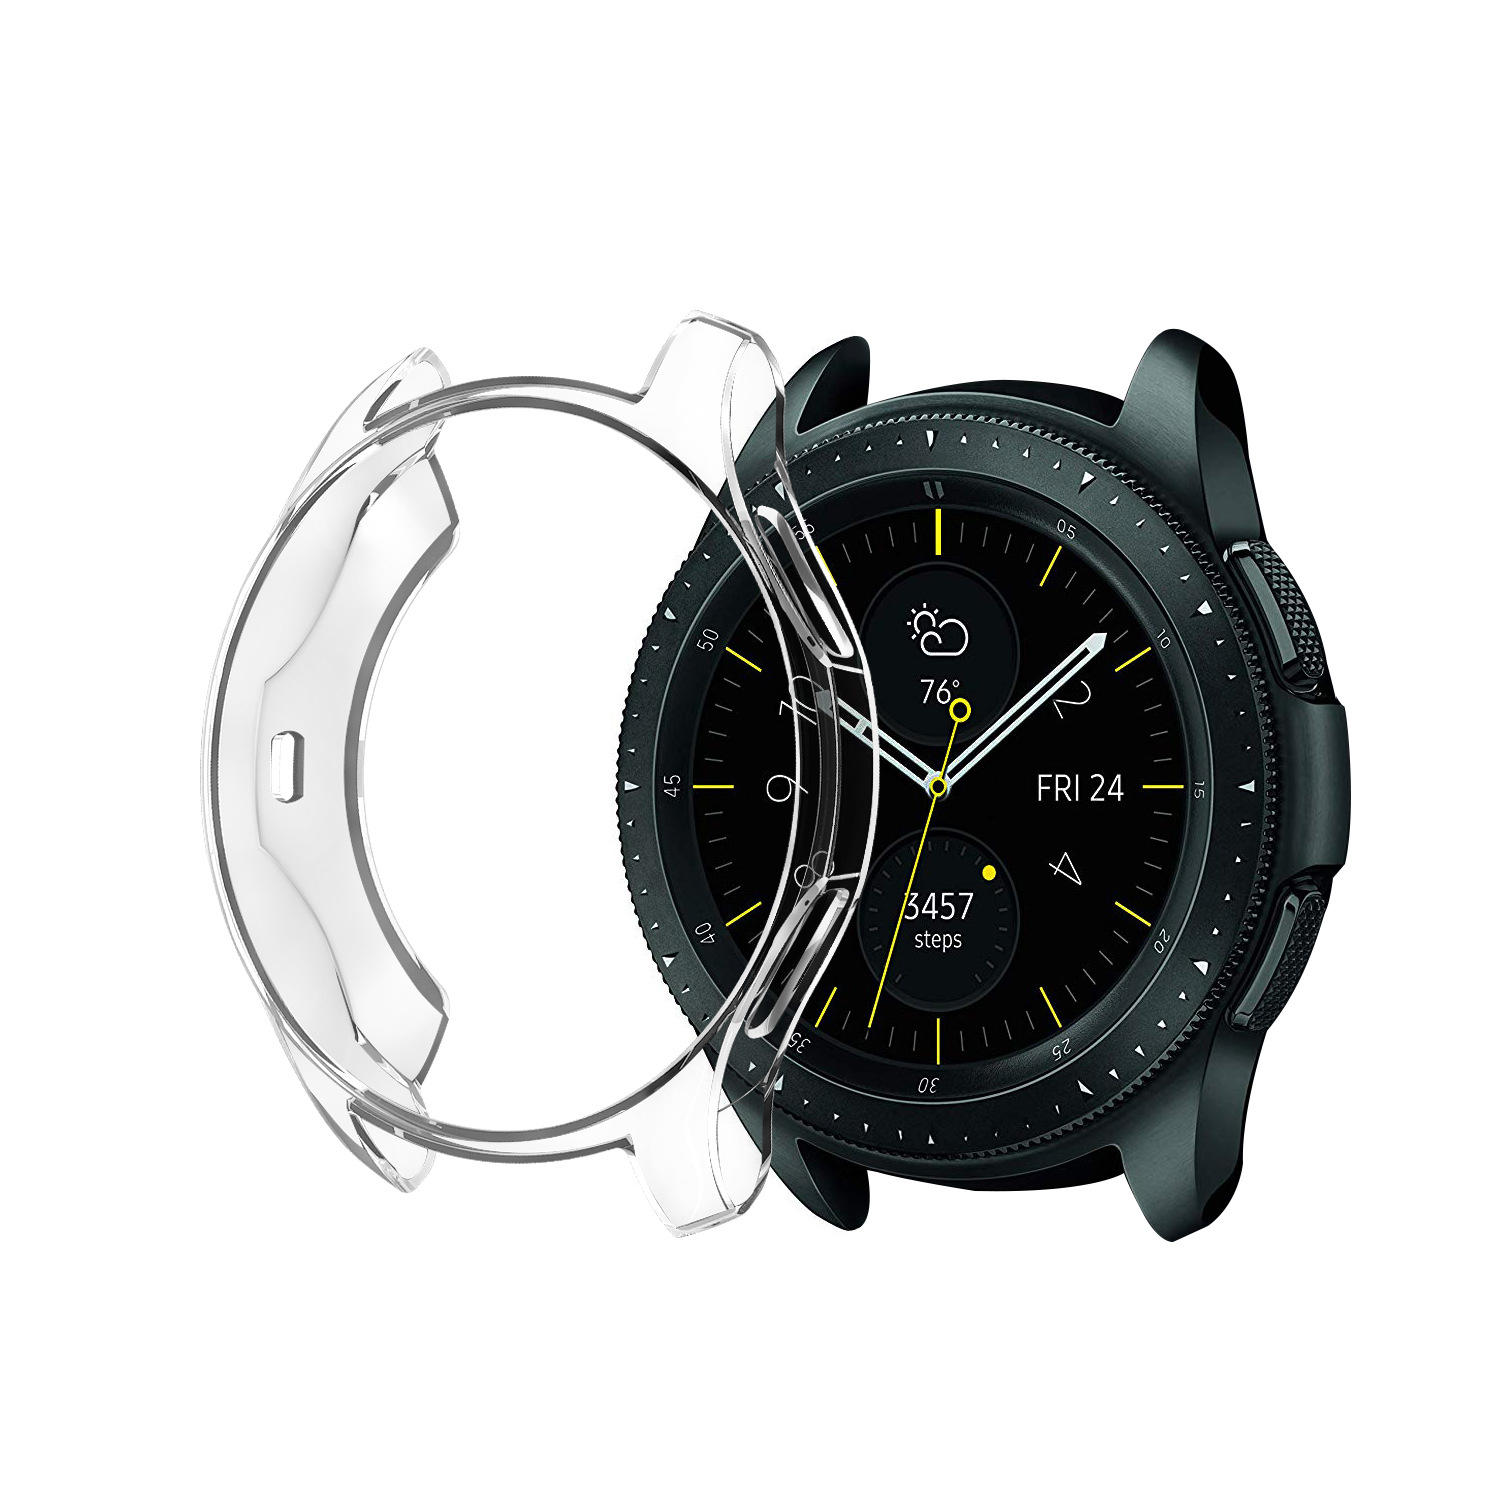 Bakeey Anti Knock TPU Watch Cover For Samsung Galaxy Watch 42mm/46mm 2018